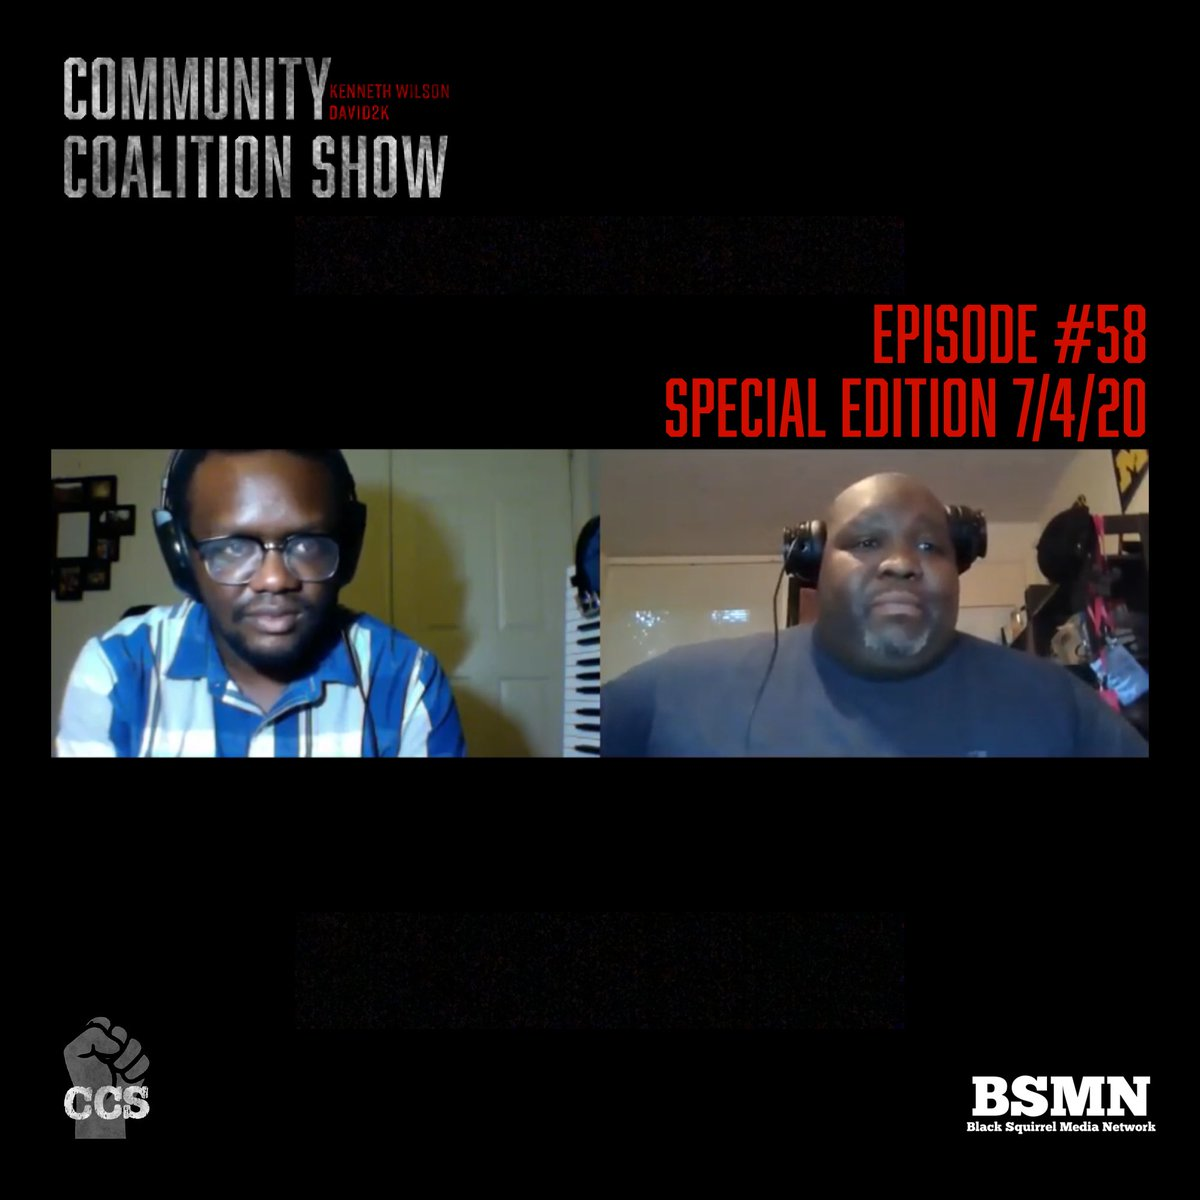 We just released a special edition of the Community Coalition Show, as we share our thoughts on being black on Independence Day.   🎥 Watch on our YouTube channel at https://t.co/2Ku5PfSOUr  #communitycoalitionshow #blacklivesmatter #July4th2020 #podcast https://t.co/HVtqS9h0z2